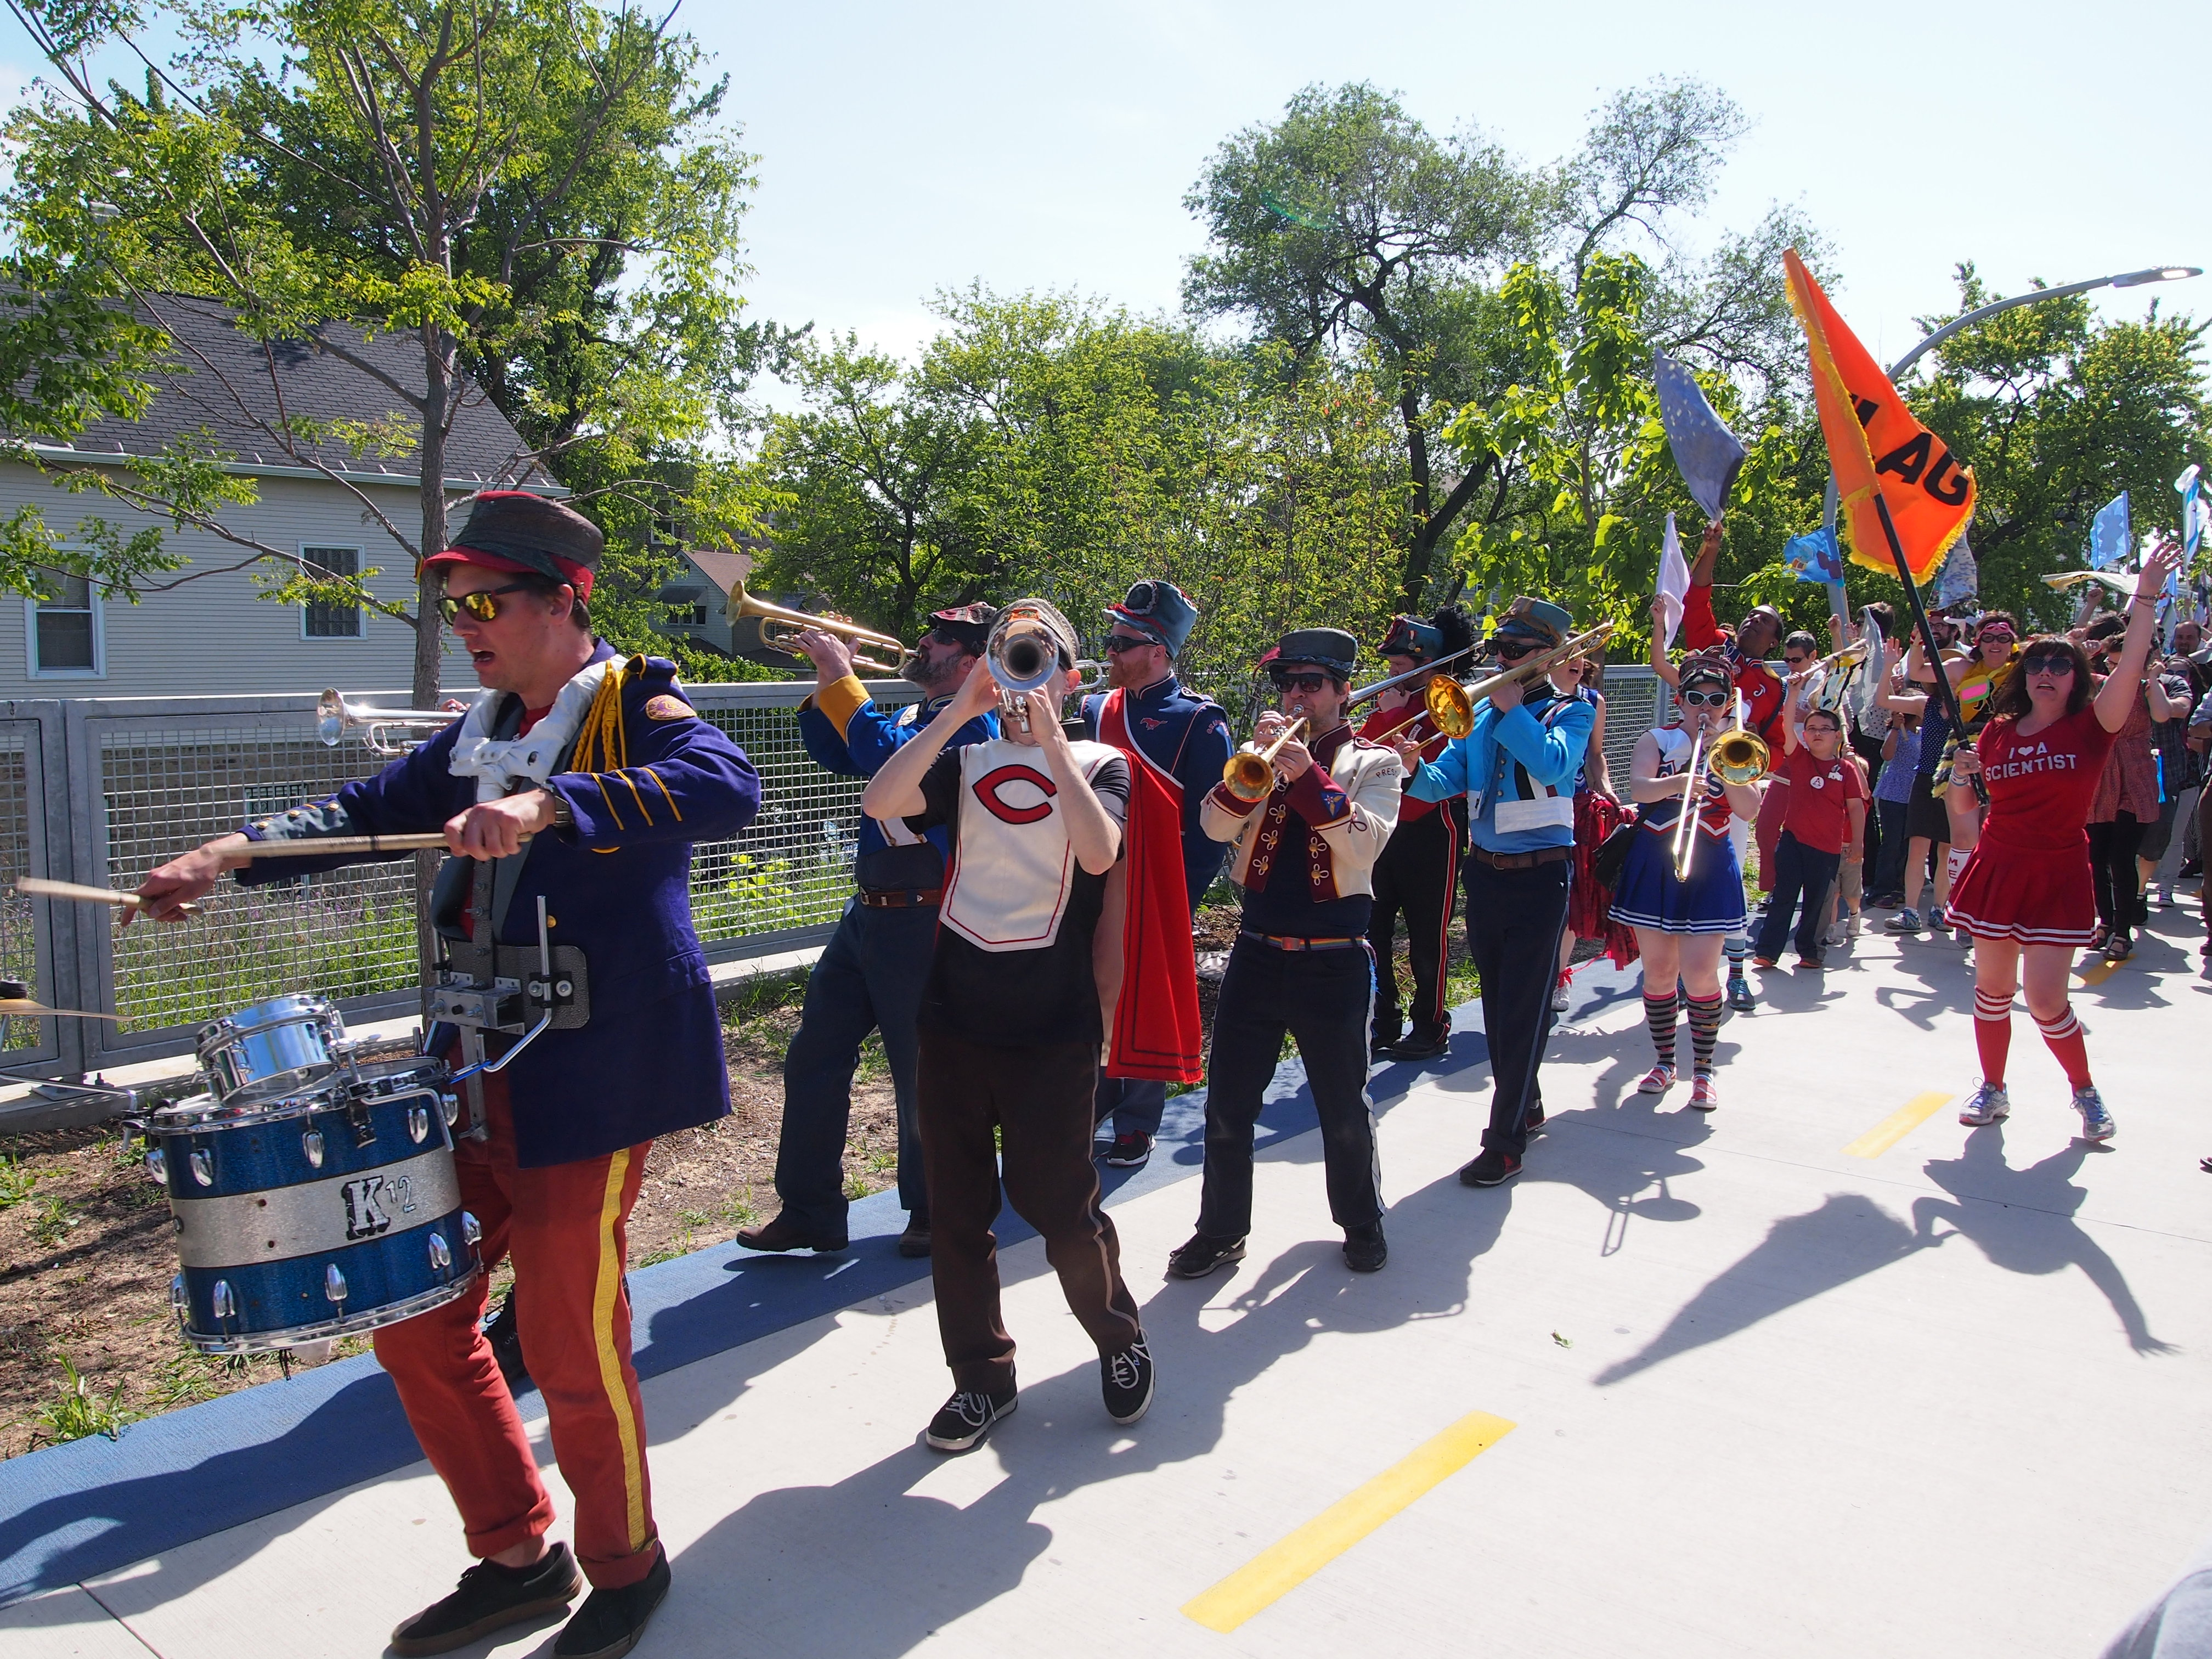 Parade on the 606, 06-06